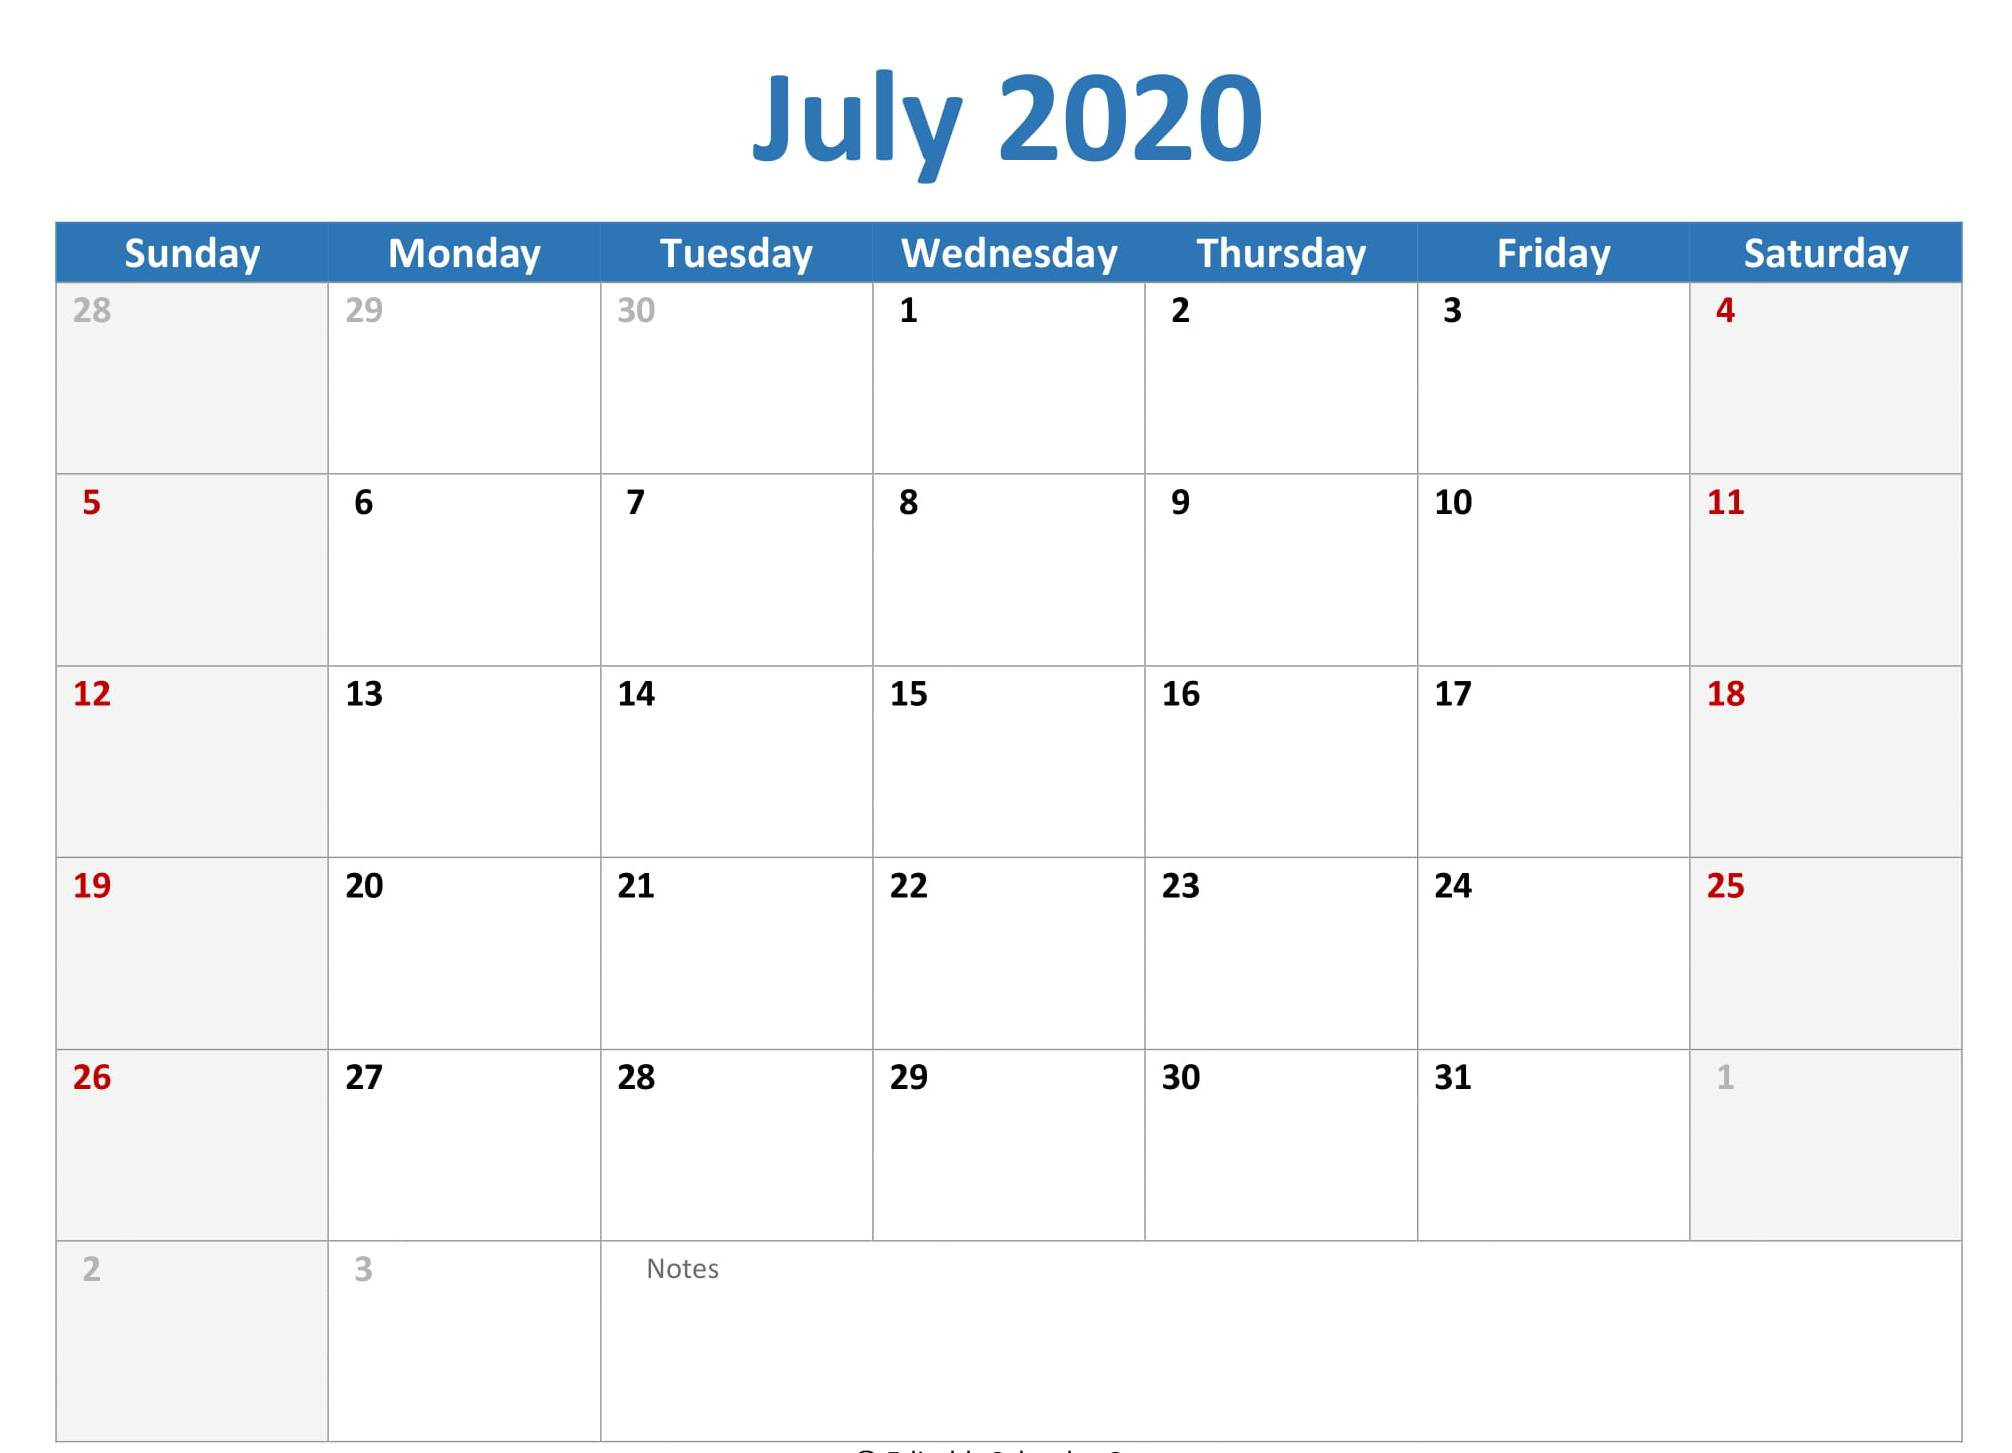 Monthly Calendar 2020 July